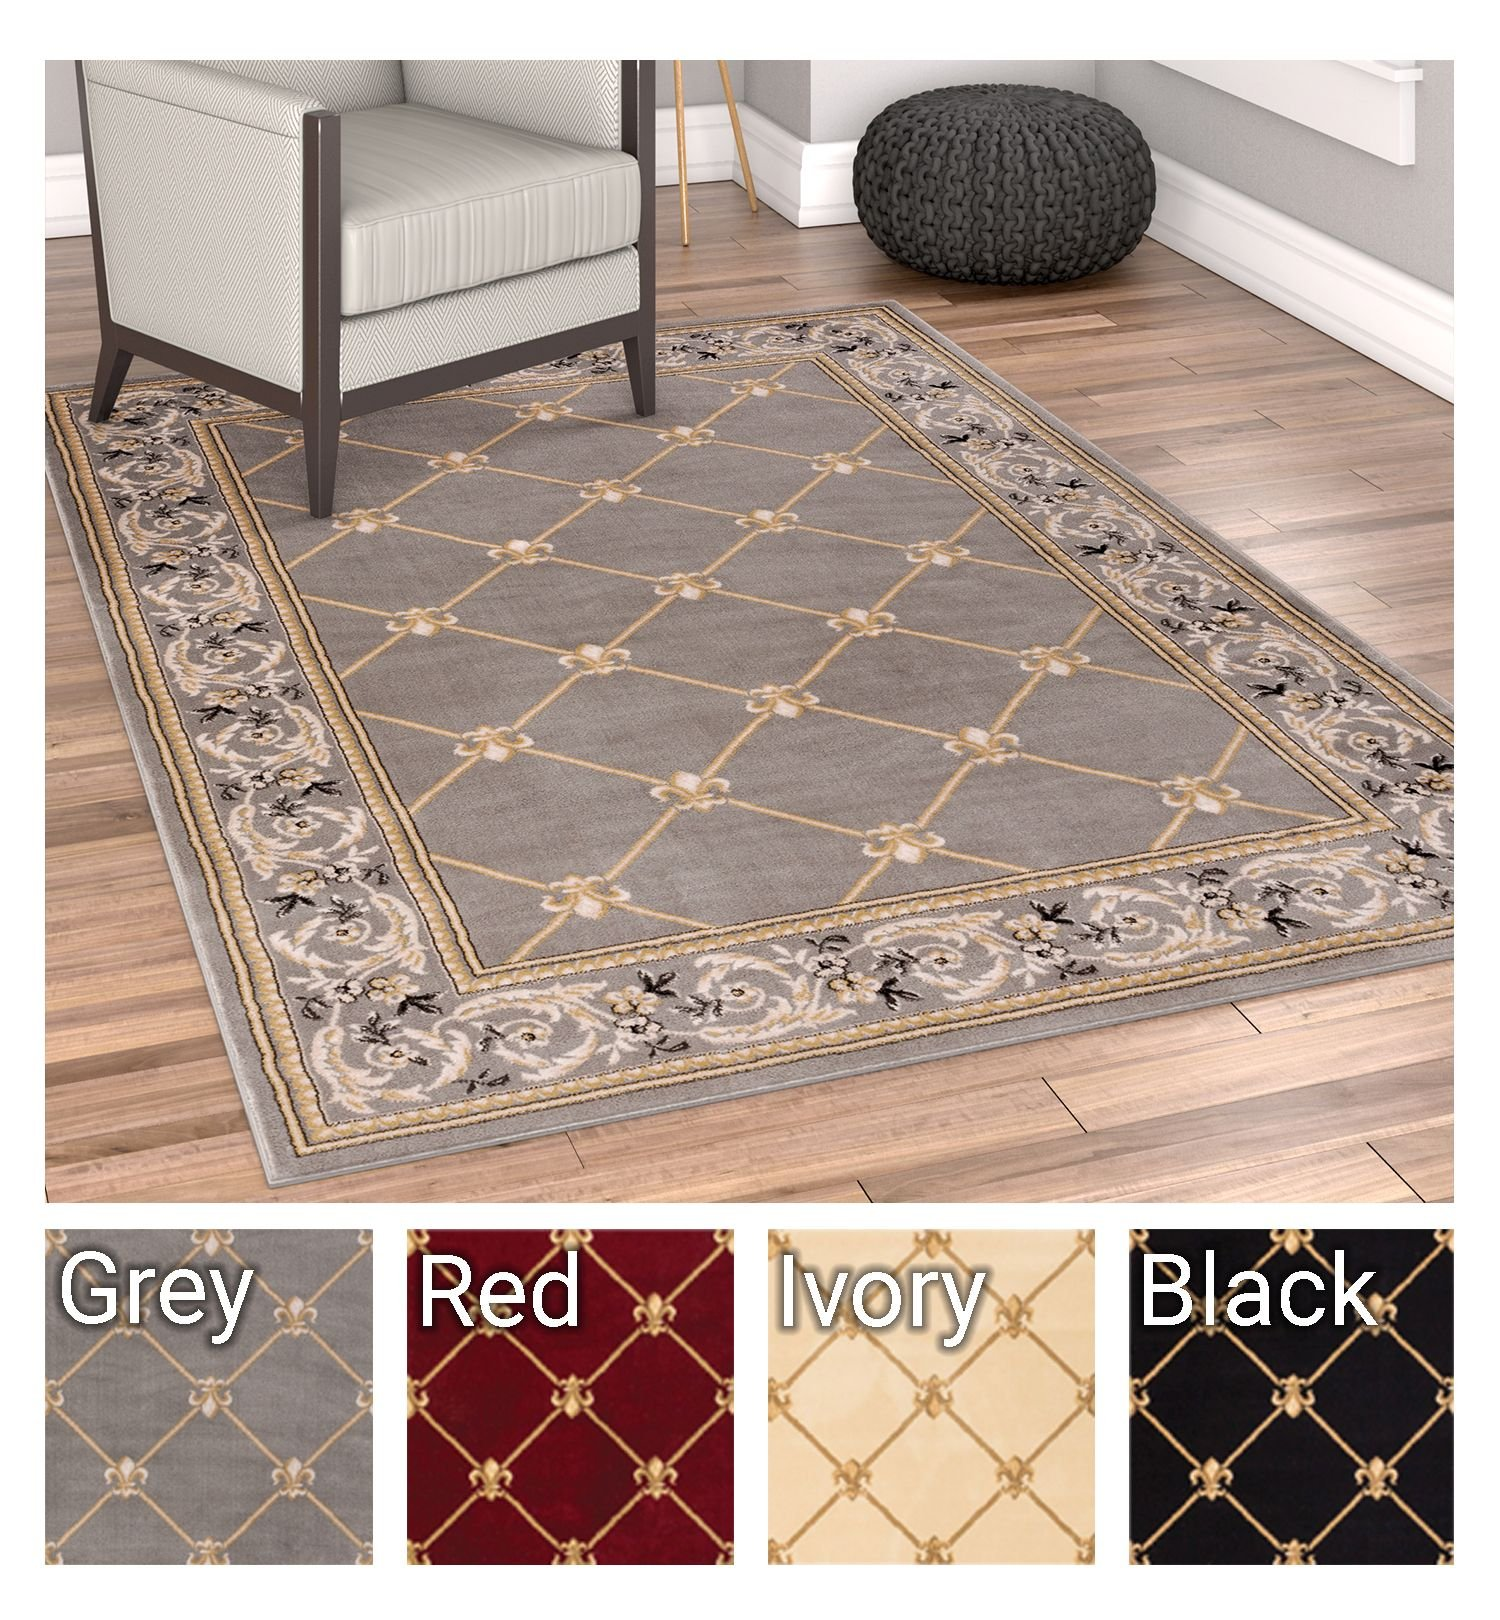 Patrician Trellis Grey Lattice Area Rug European French Formal Traditional Area Rug 7' x 9' Easy Clean Stain Fade Resistant Shed Free Modern Classic Contemporary Thick Soft Plush Living Dining Room by Well Woven